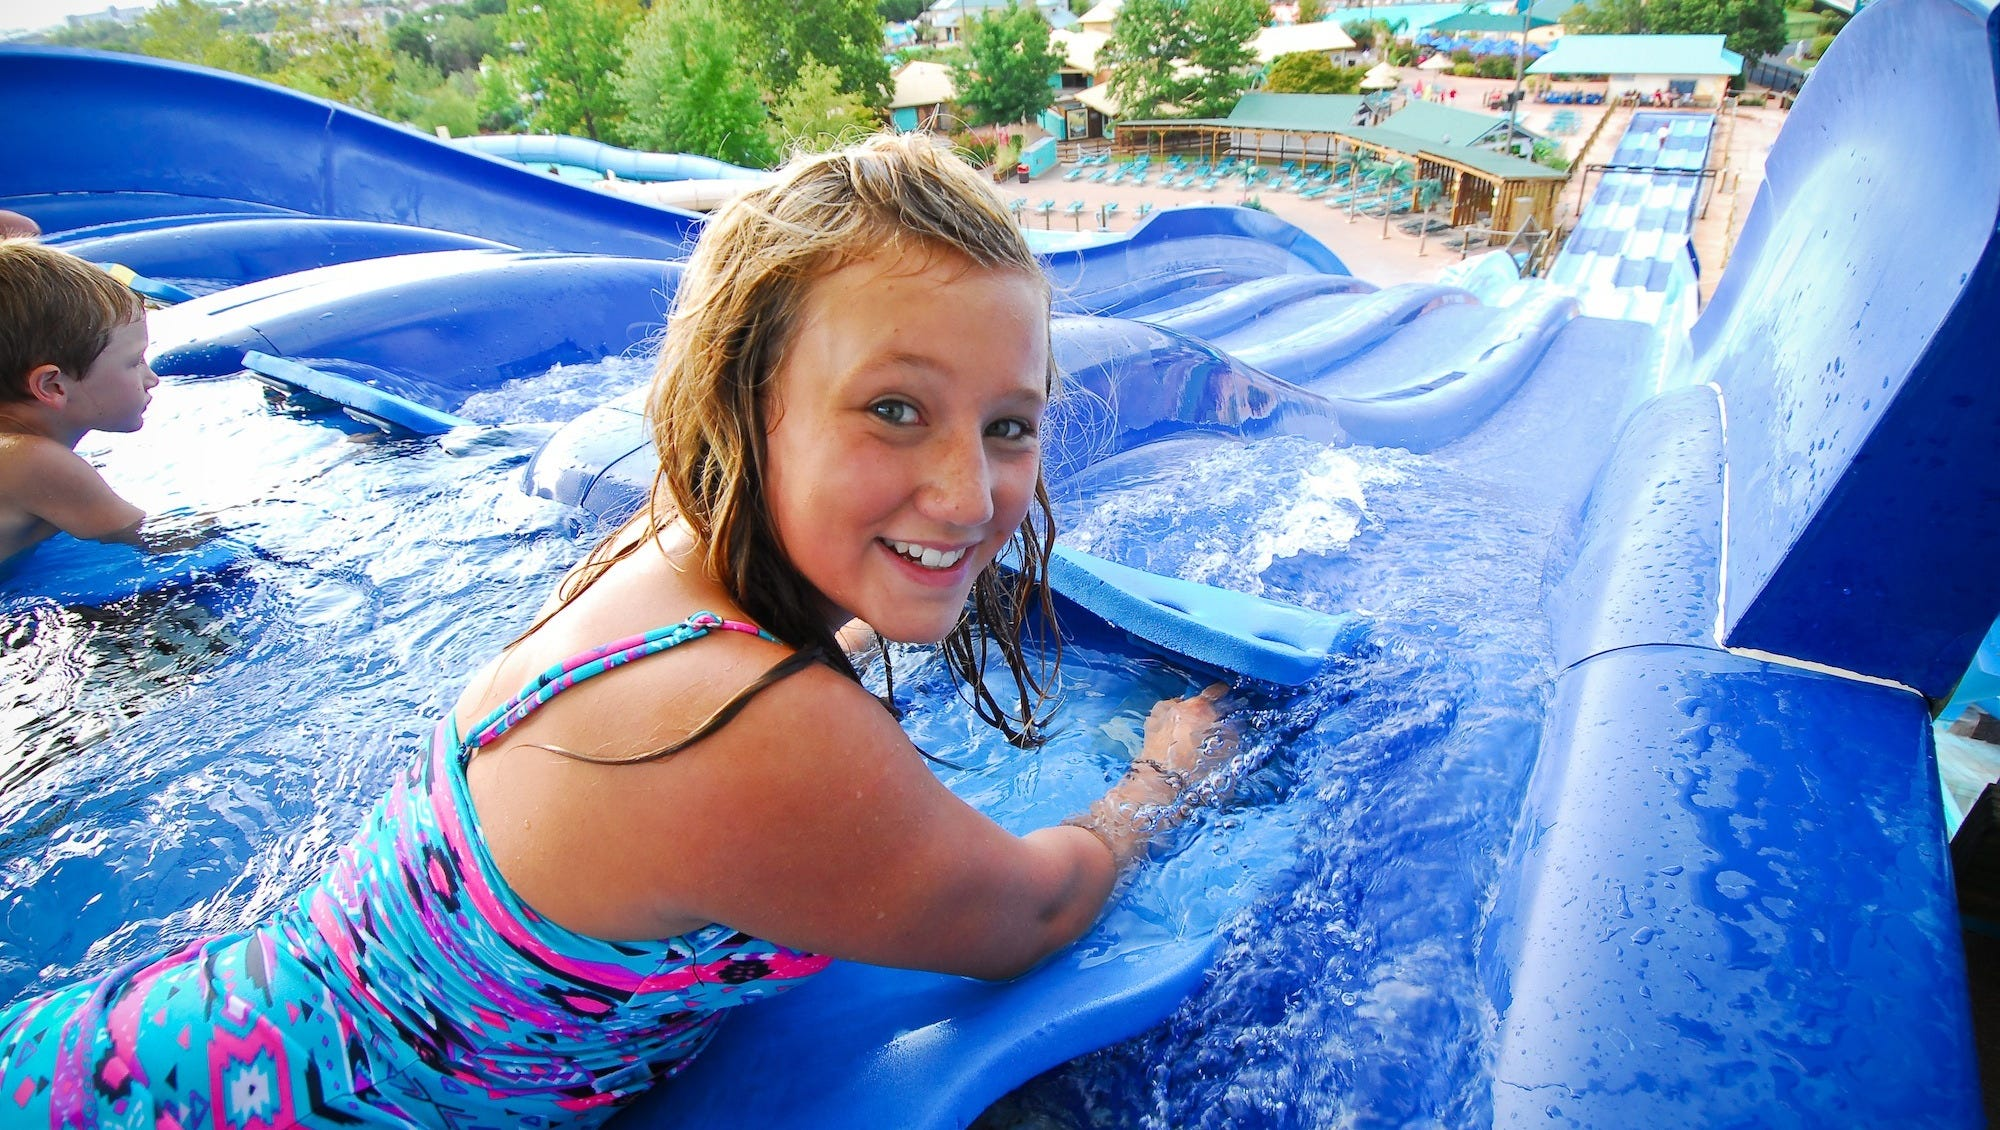 Silver Dollar City's sister park, White Water, comes in ninth place, thanks to its 13 acres of rides, attractions and entertainment. In the summer months, guests can watch movies in the wave pool or take on water slides until 10 p.m.